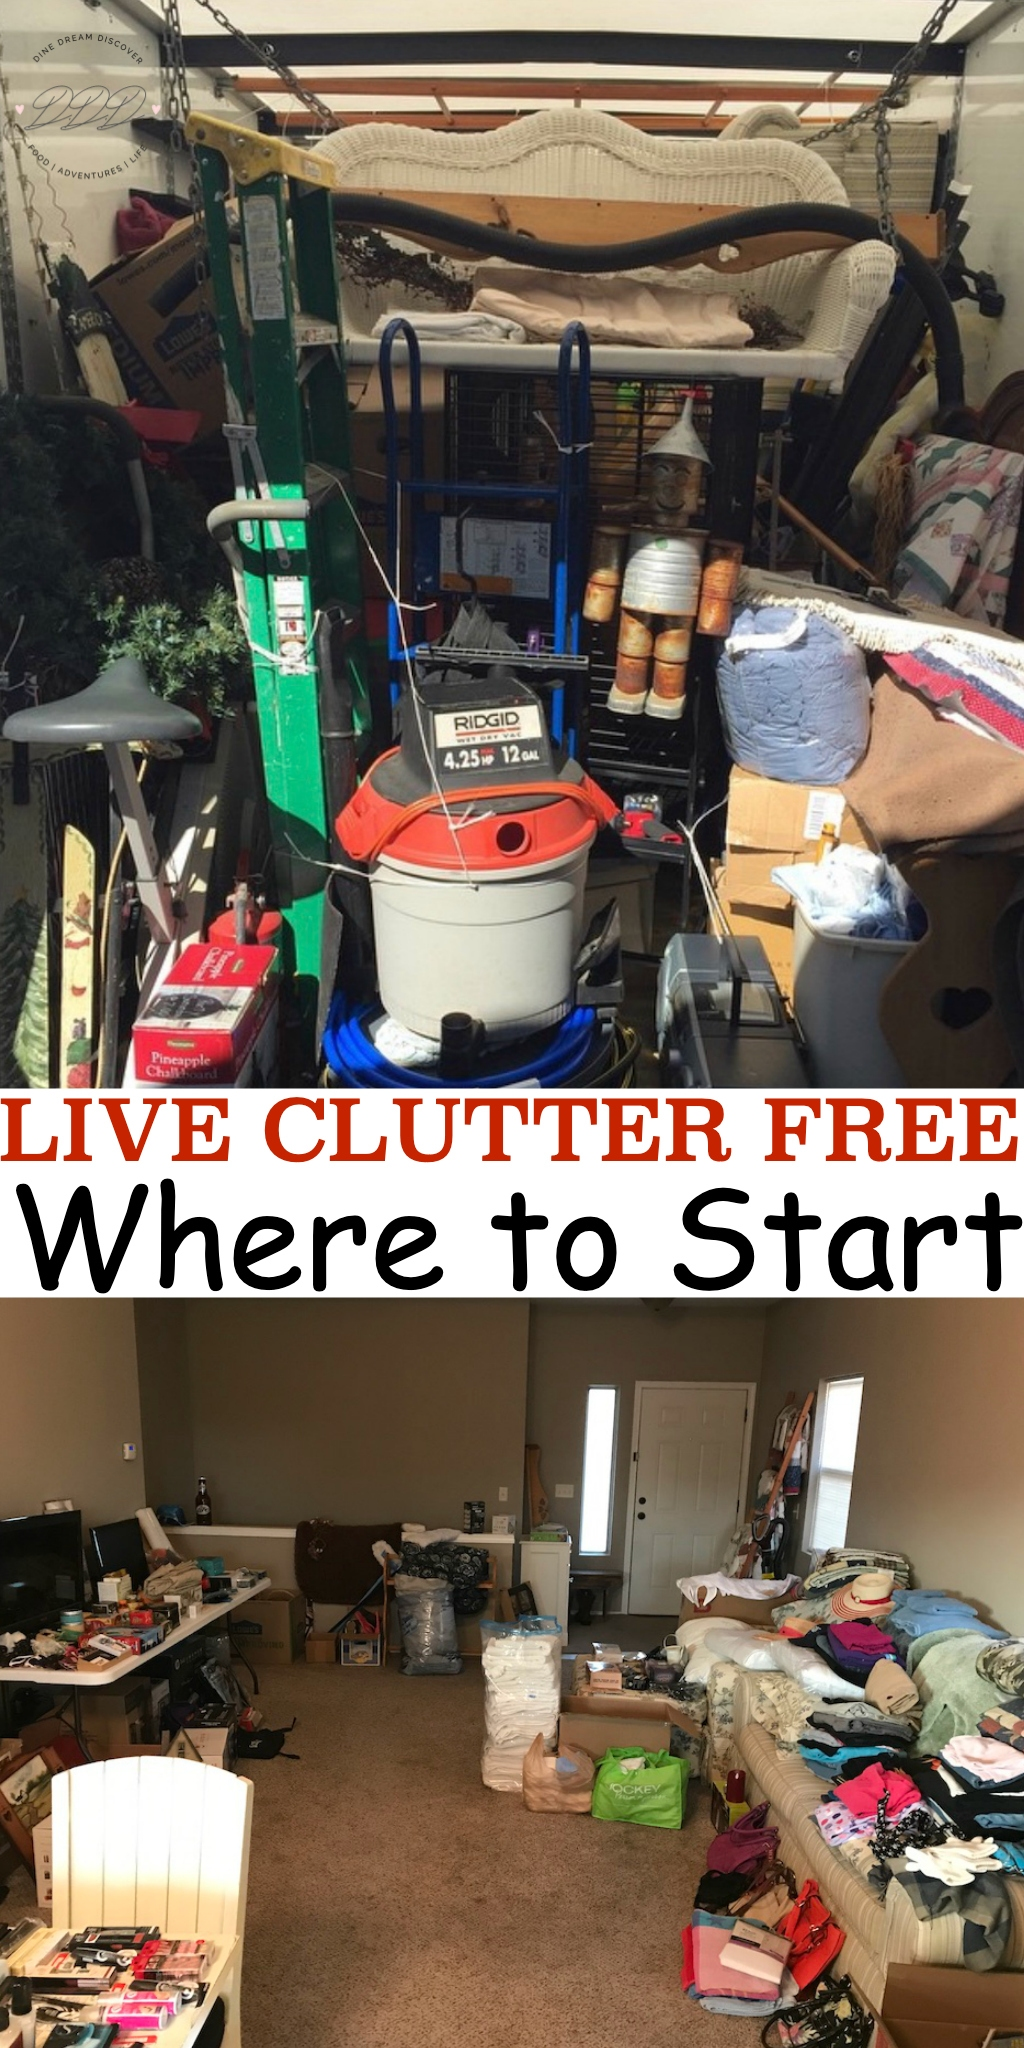 You want to get rid of it but you aren't sure where to start. You must be keeping all of these things for a reason. Where do you begin to live clutter free?